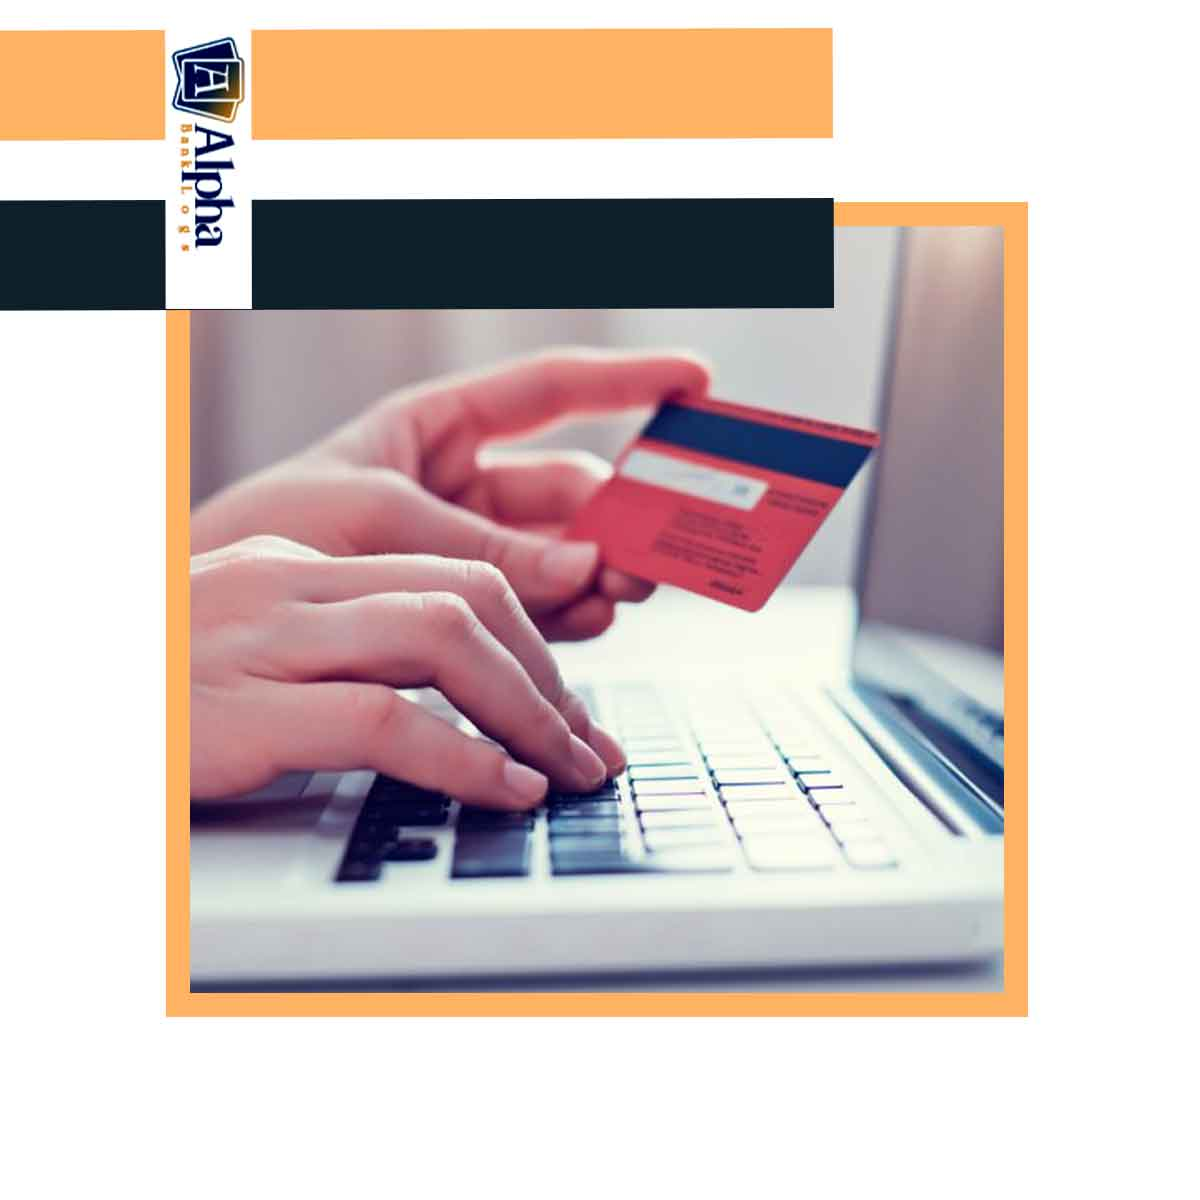 COMERICIAL DEBIT CARD WITH PIN